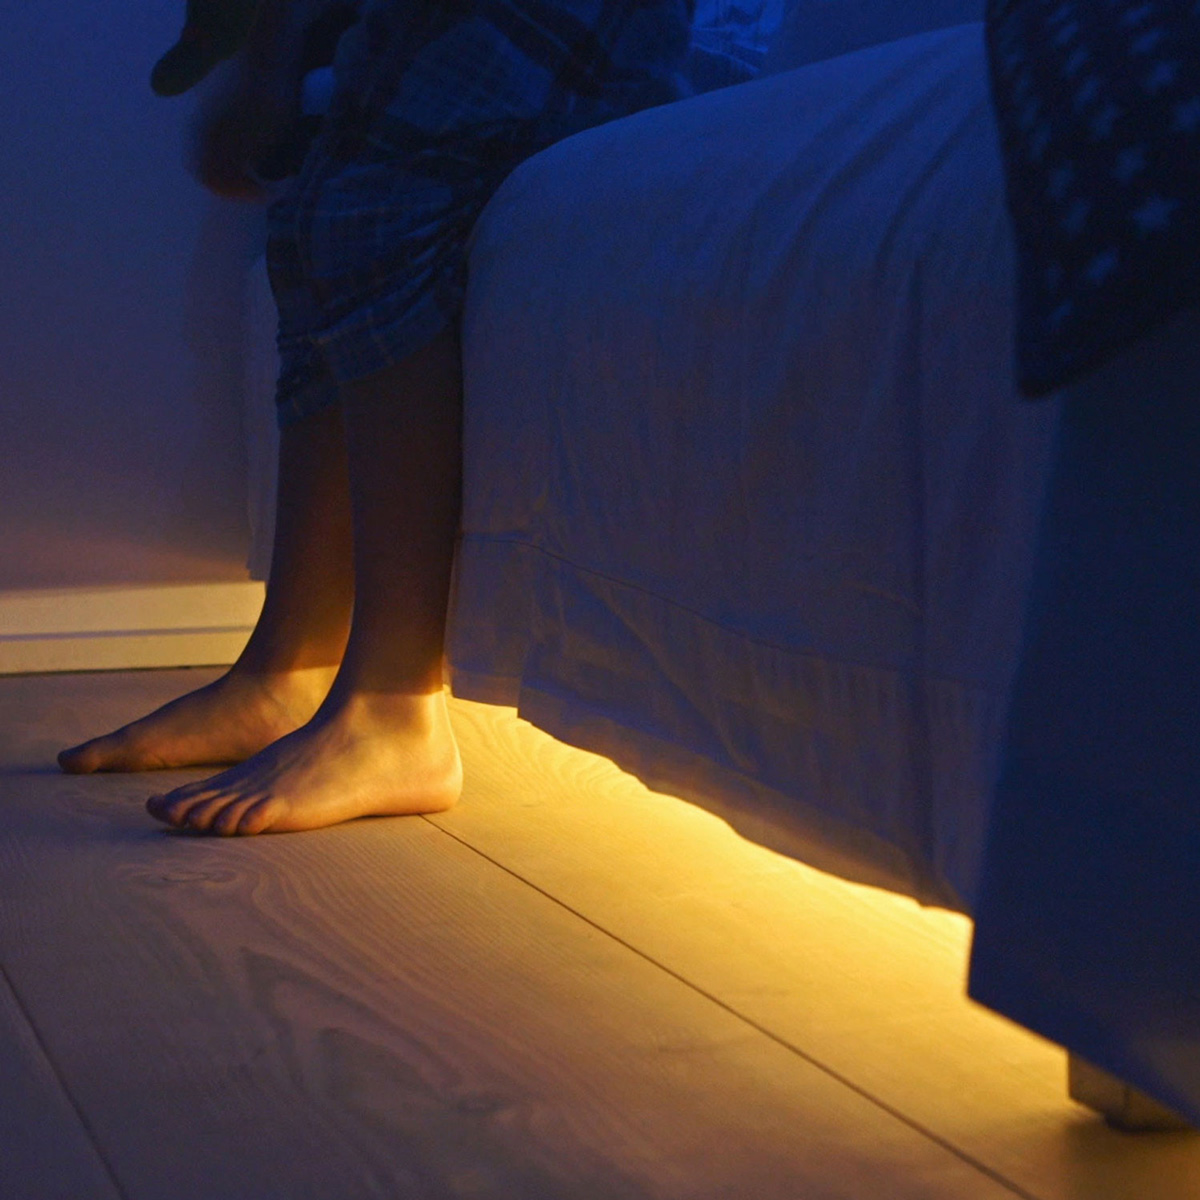 Bed Light Discreet Motion Activated Under The Bed Lighting